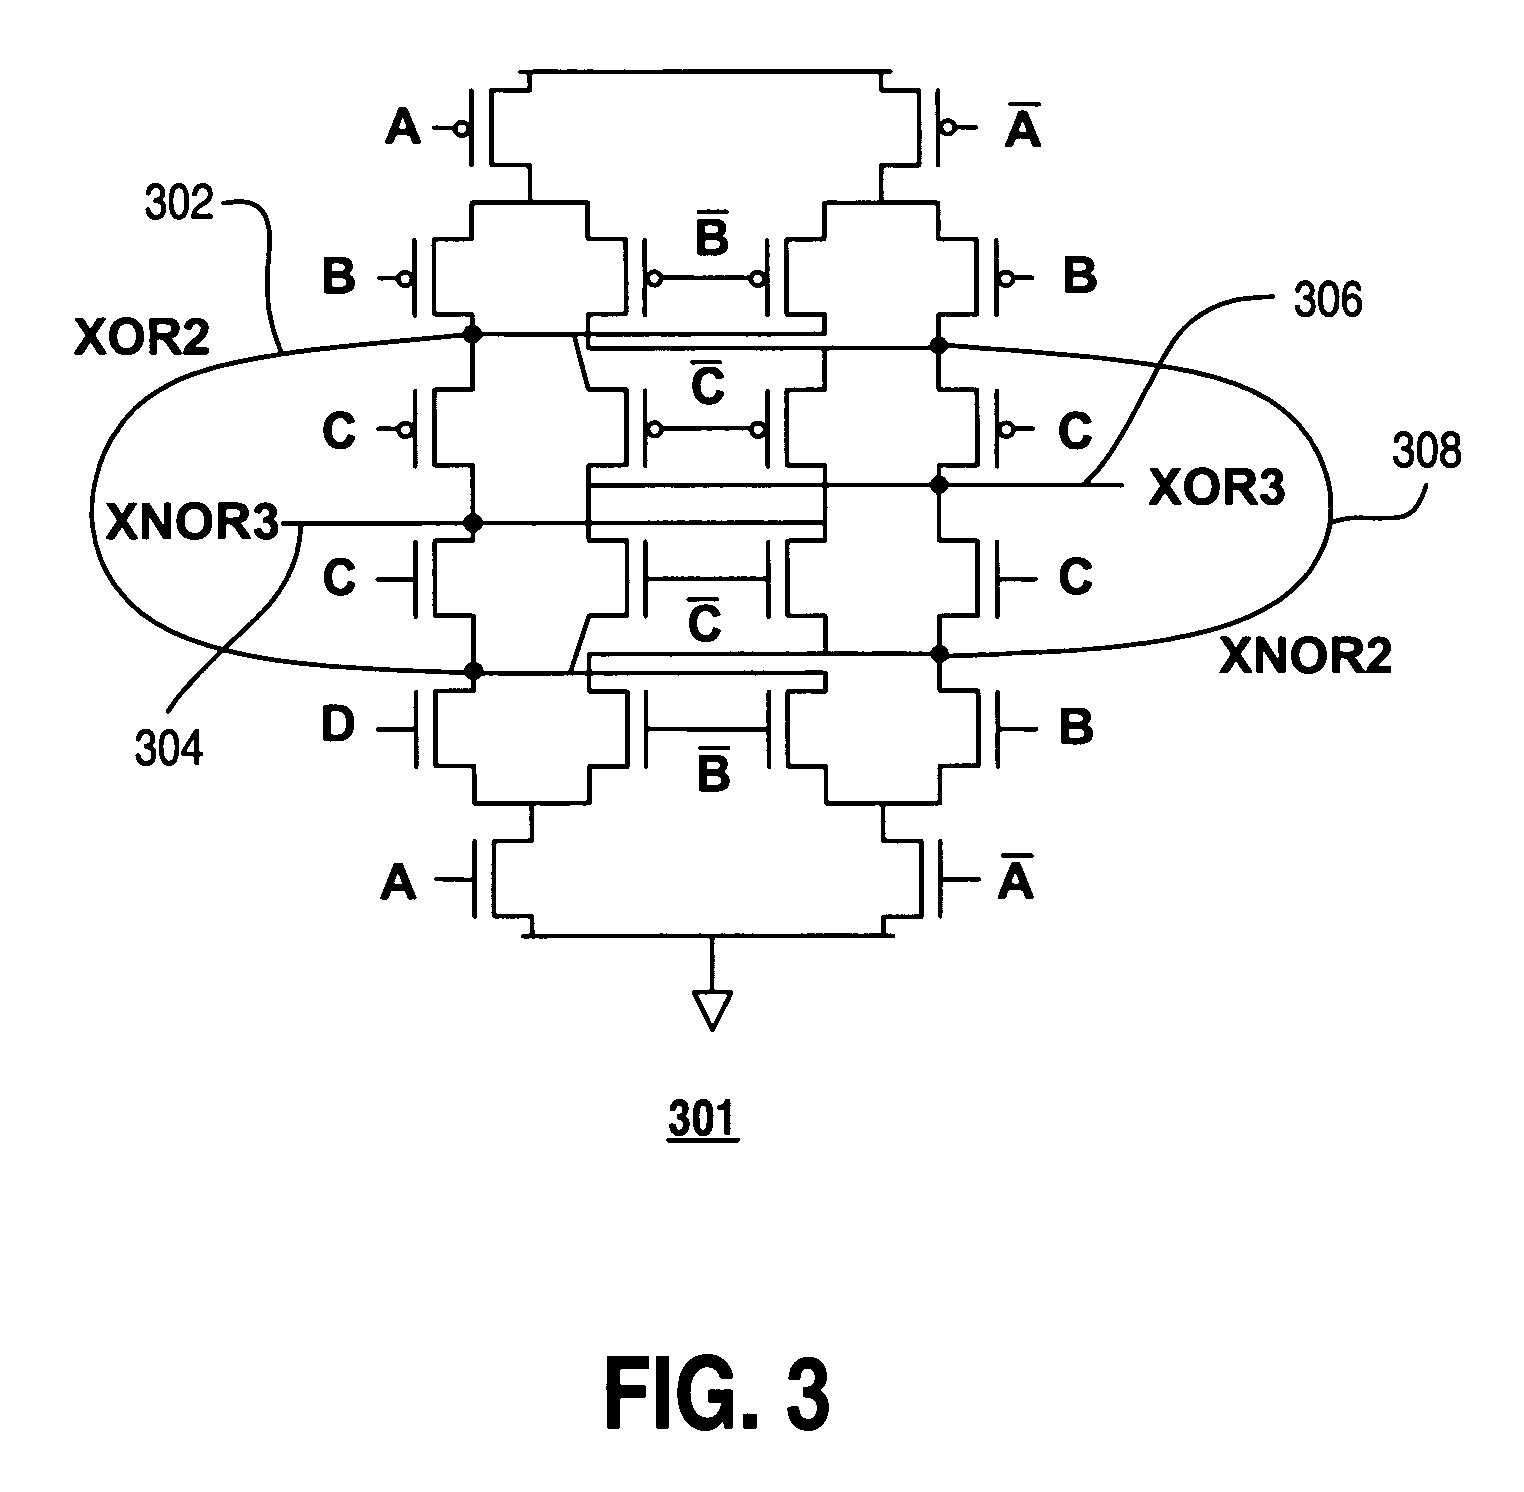 cmos logic circuit for xor gate